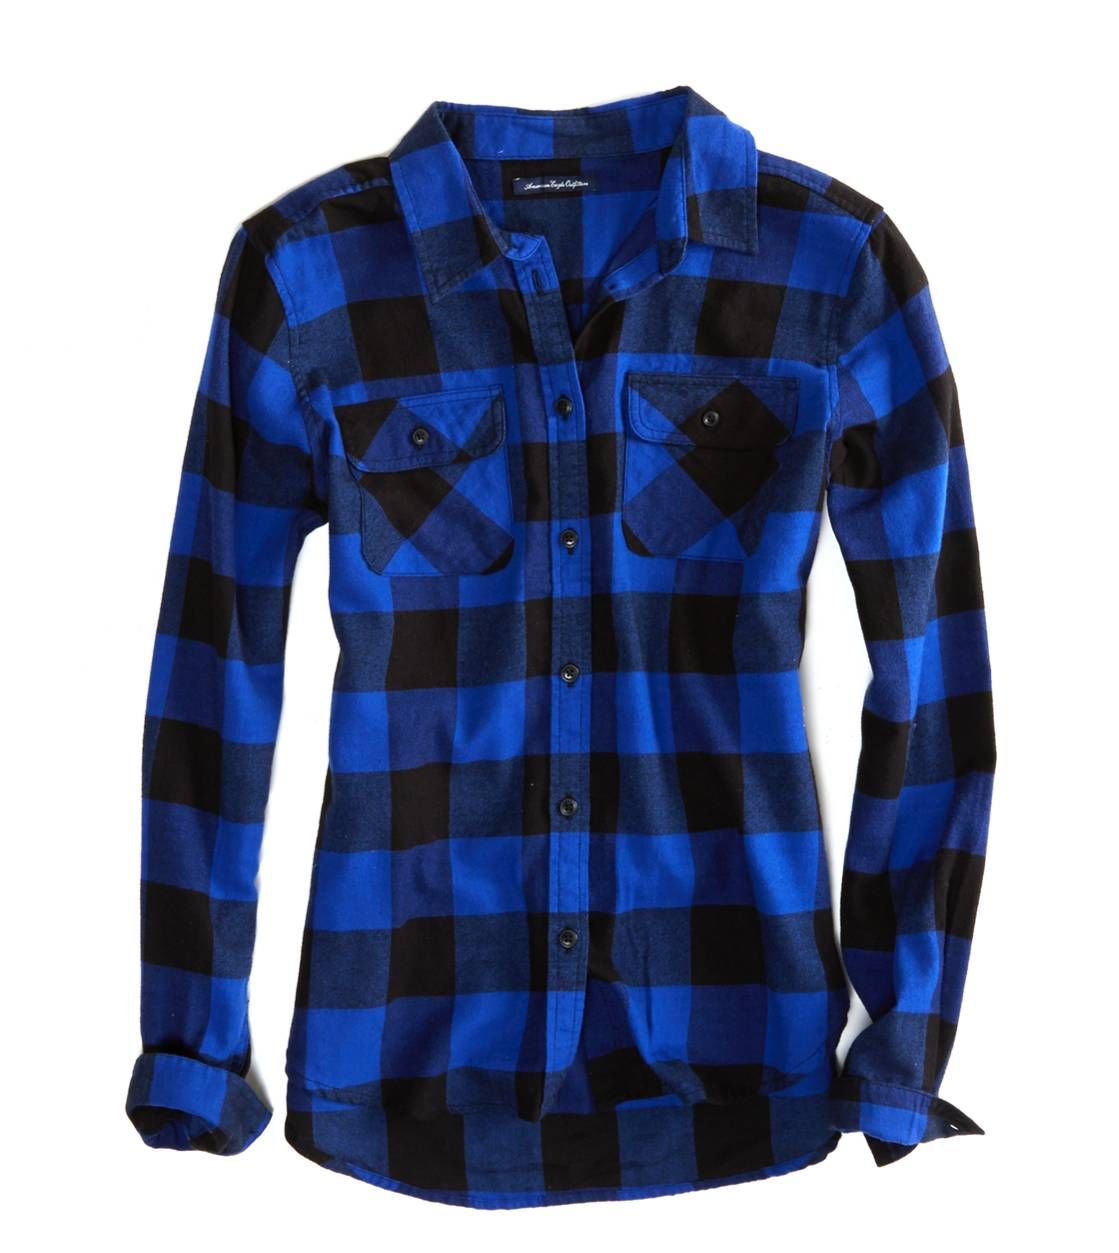 You searched for: blue flannel shirt! Etsy is the home to thousands of handmade, vintage, and one-of-a-kind products and gifts related to your search. No matter what you're looking for or where you are in the world, our global marketplace of sellers can help you find unique and affordable options. Let's get started!